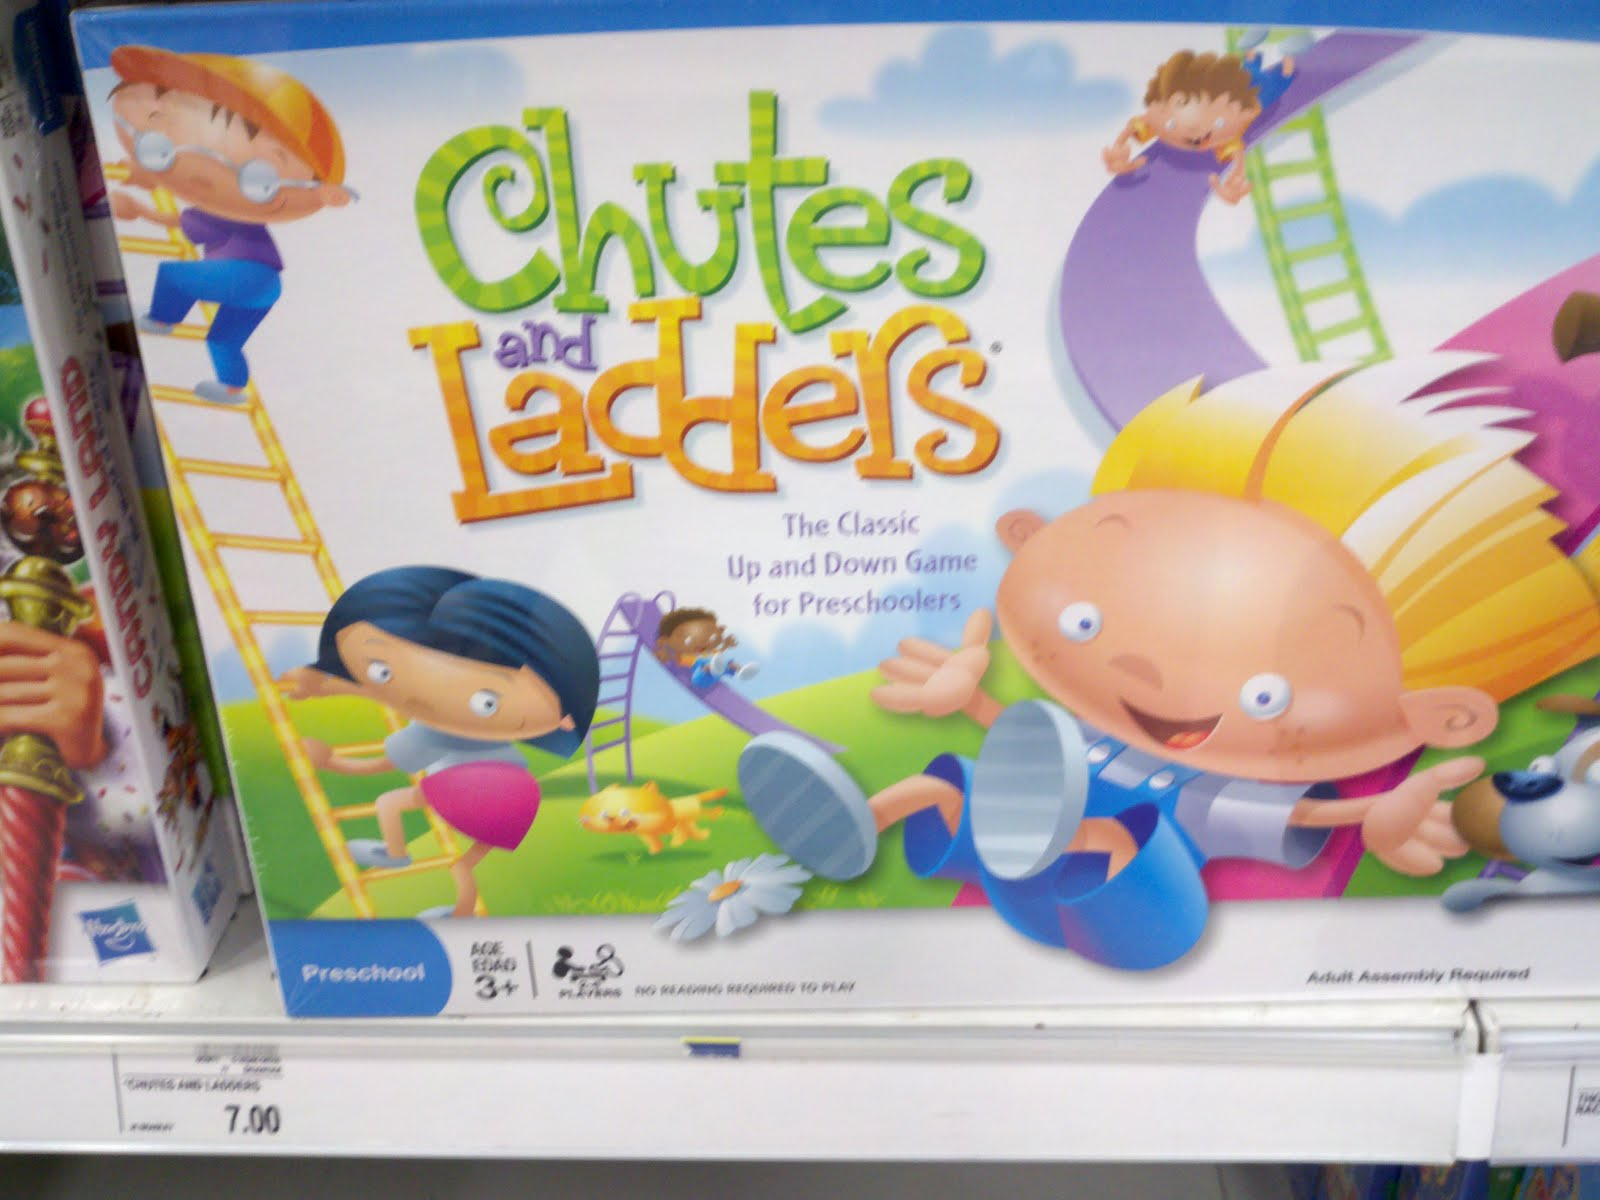 Chutes And Ladders Board Printable Chutes and ladders $7.00 $3/1 ...